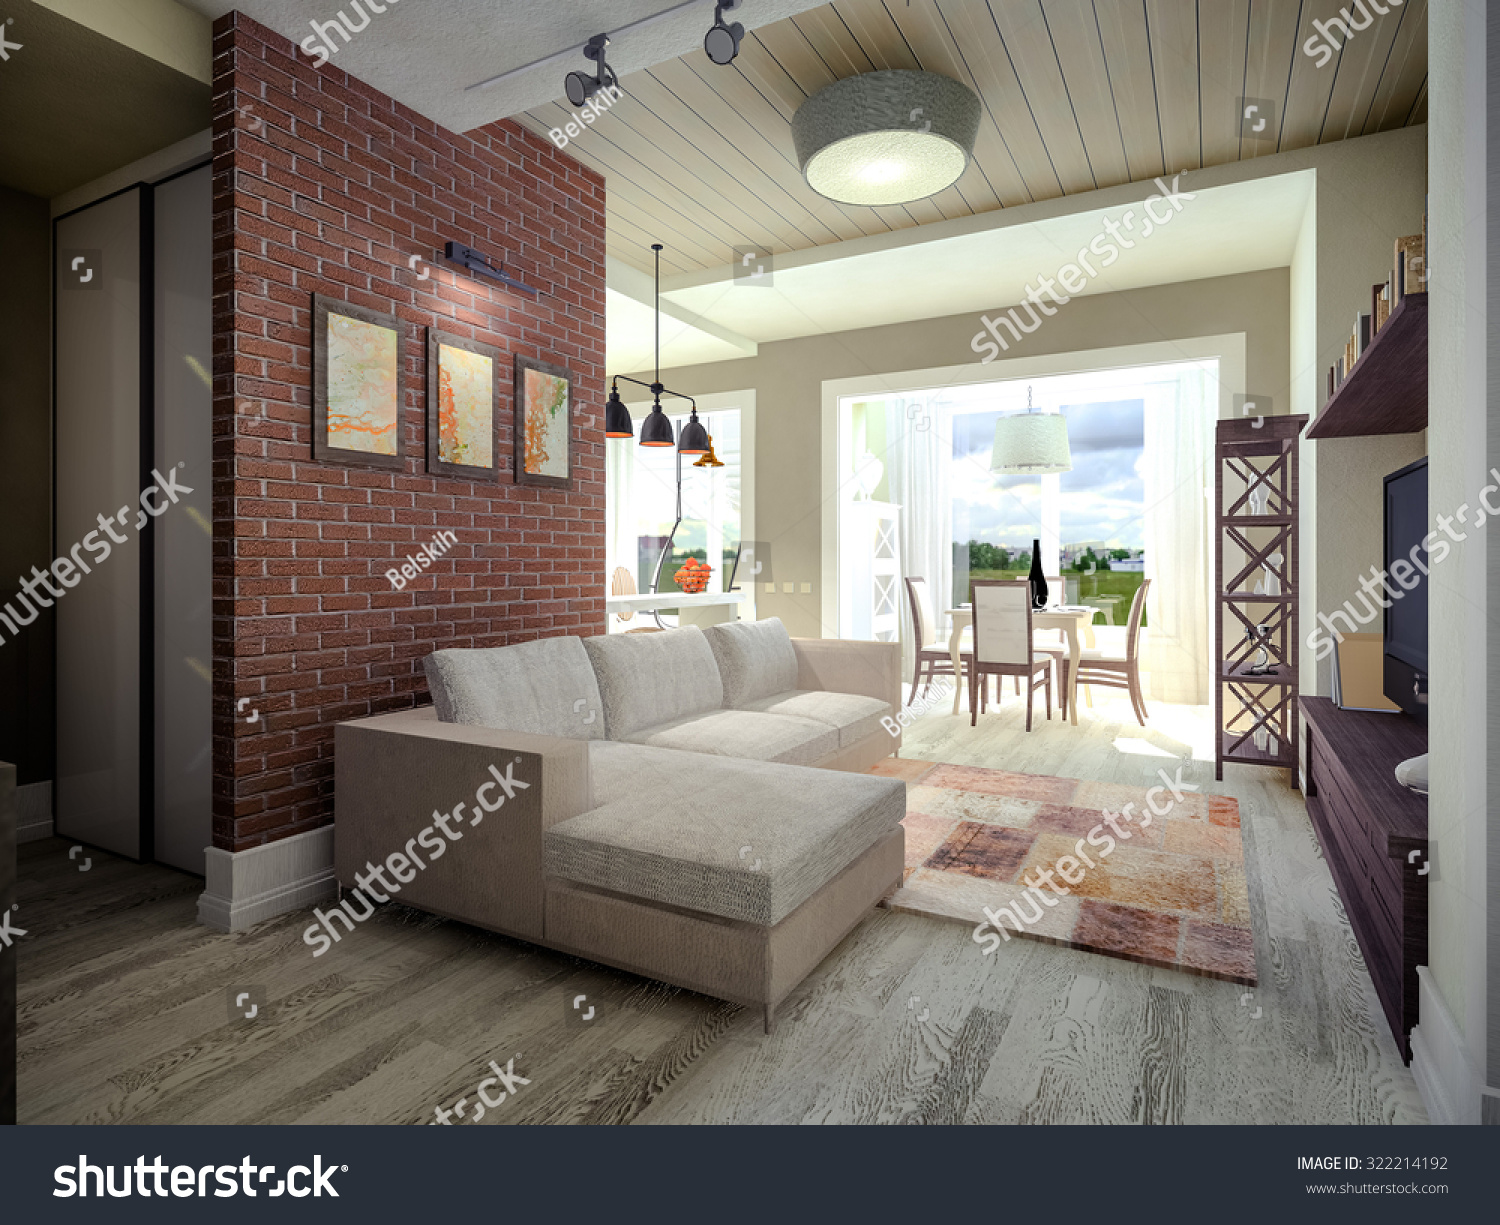 3D Visualization Of A Living Room With Brick Wall